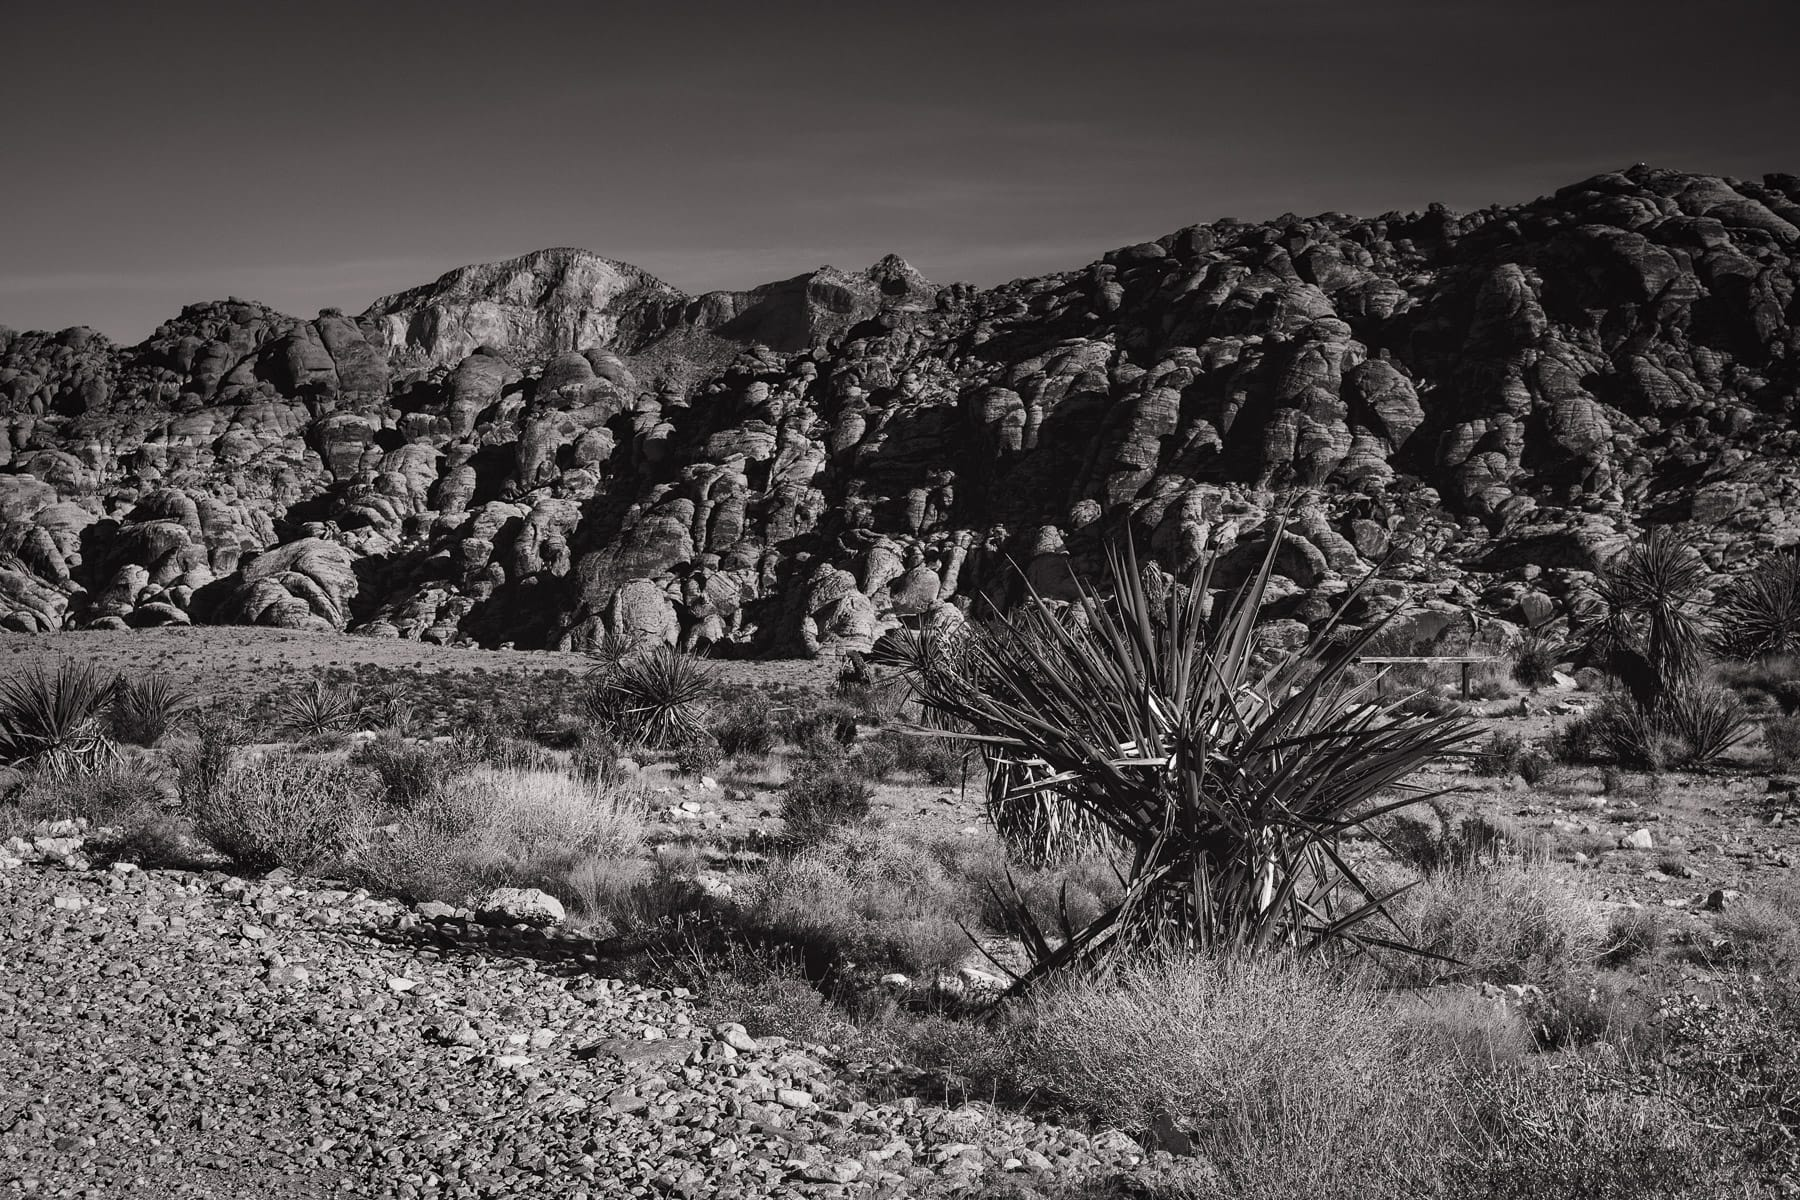 The dry desert landscape of Nevada's Red Rock Canyon.